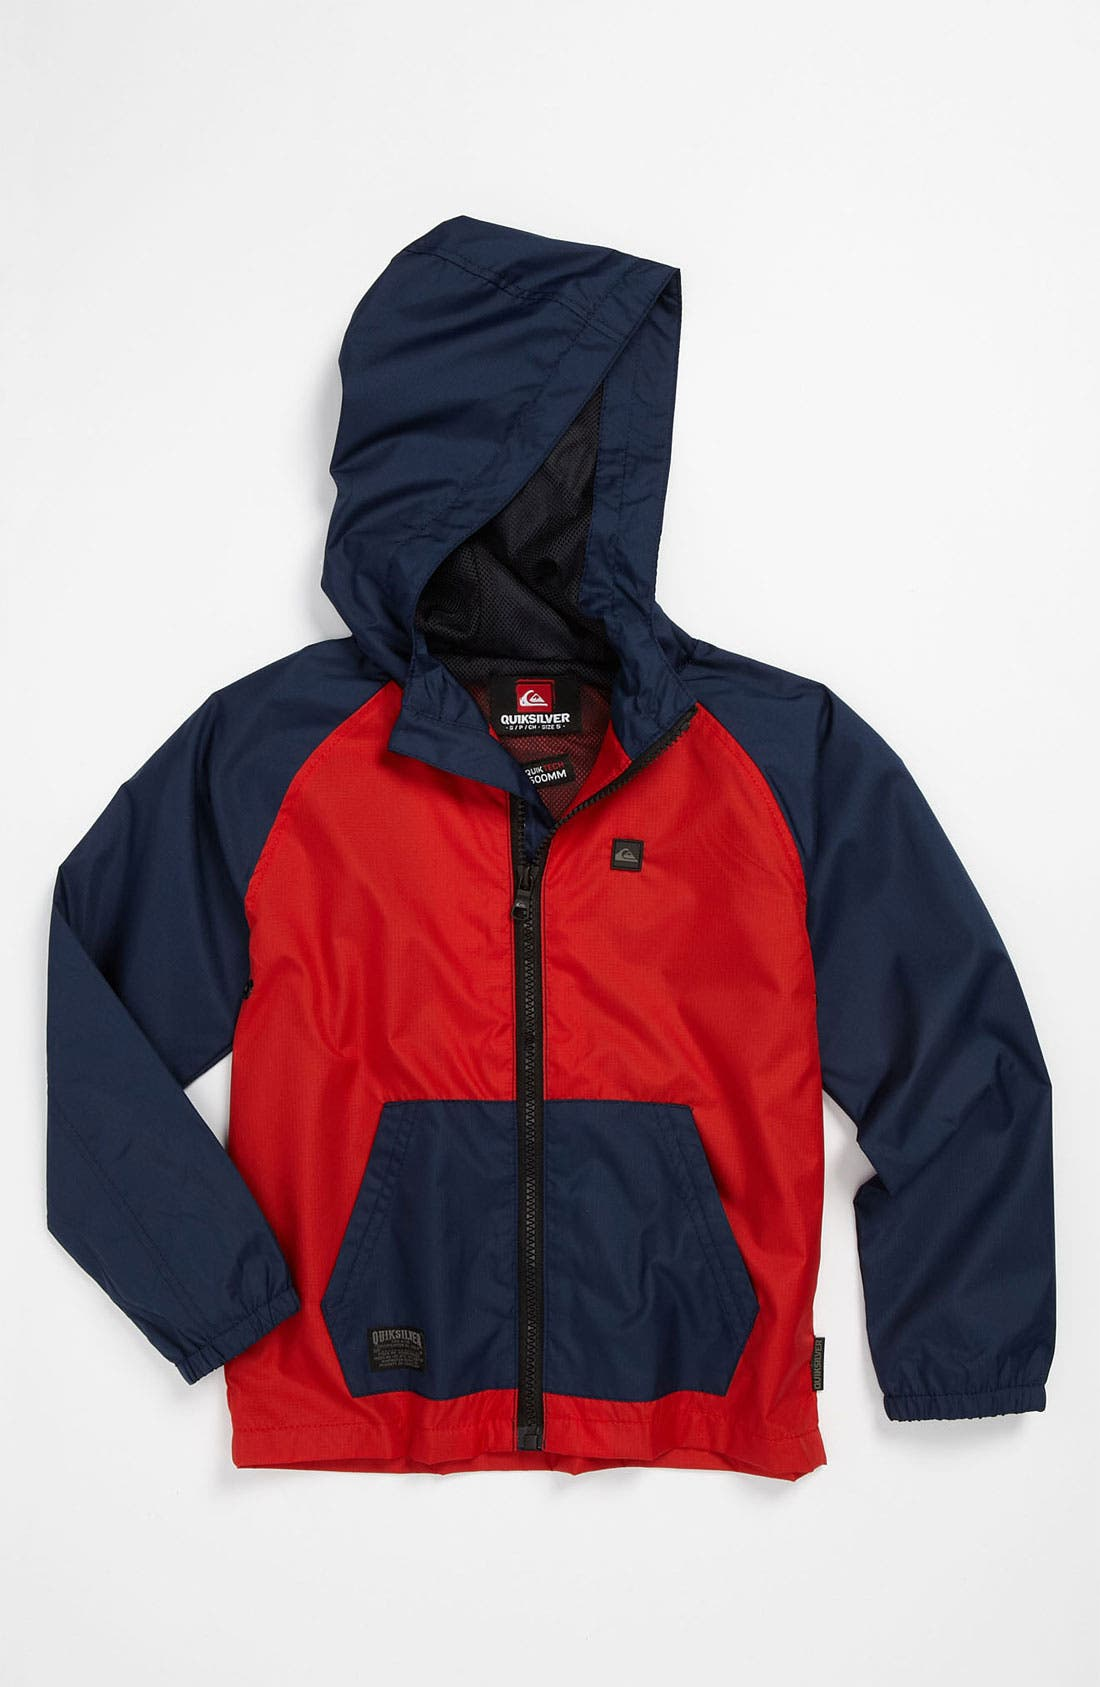 Alternate Image 1 Selected - Quiksilver 'Ward' Jacket (Little Boys)